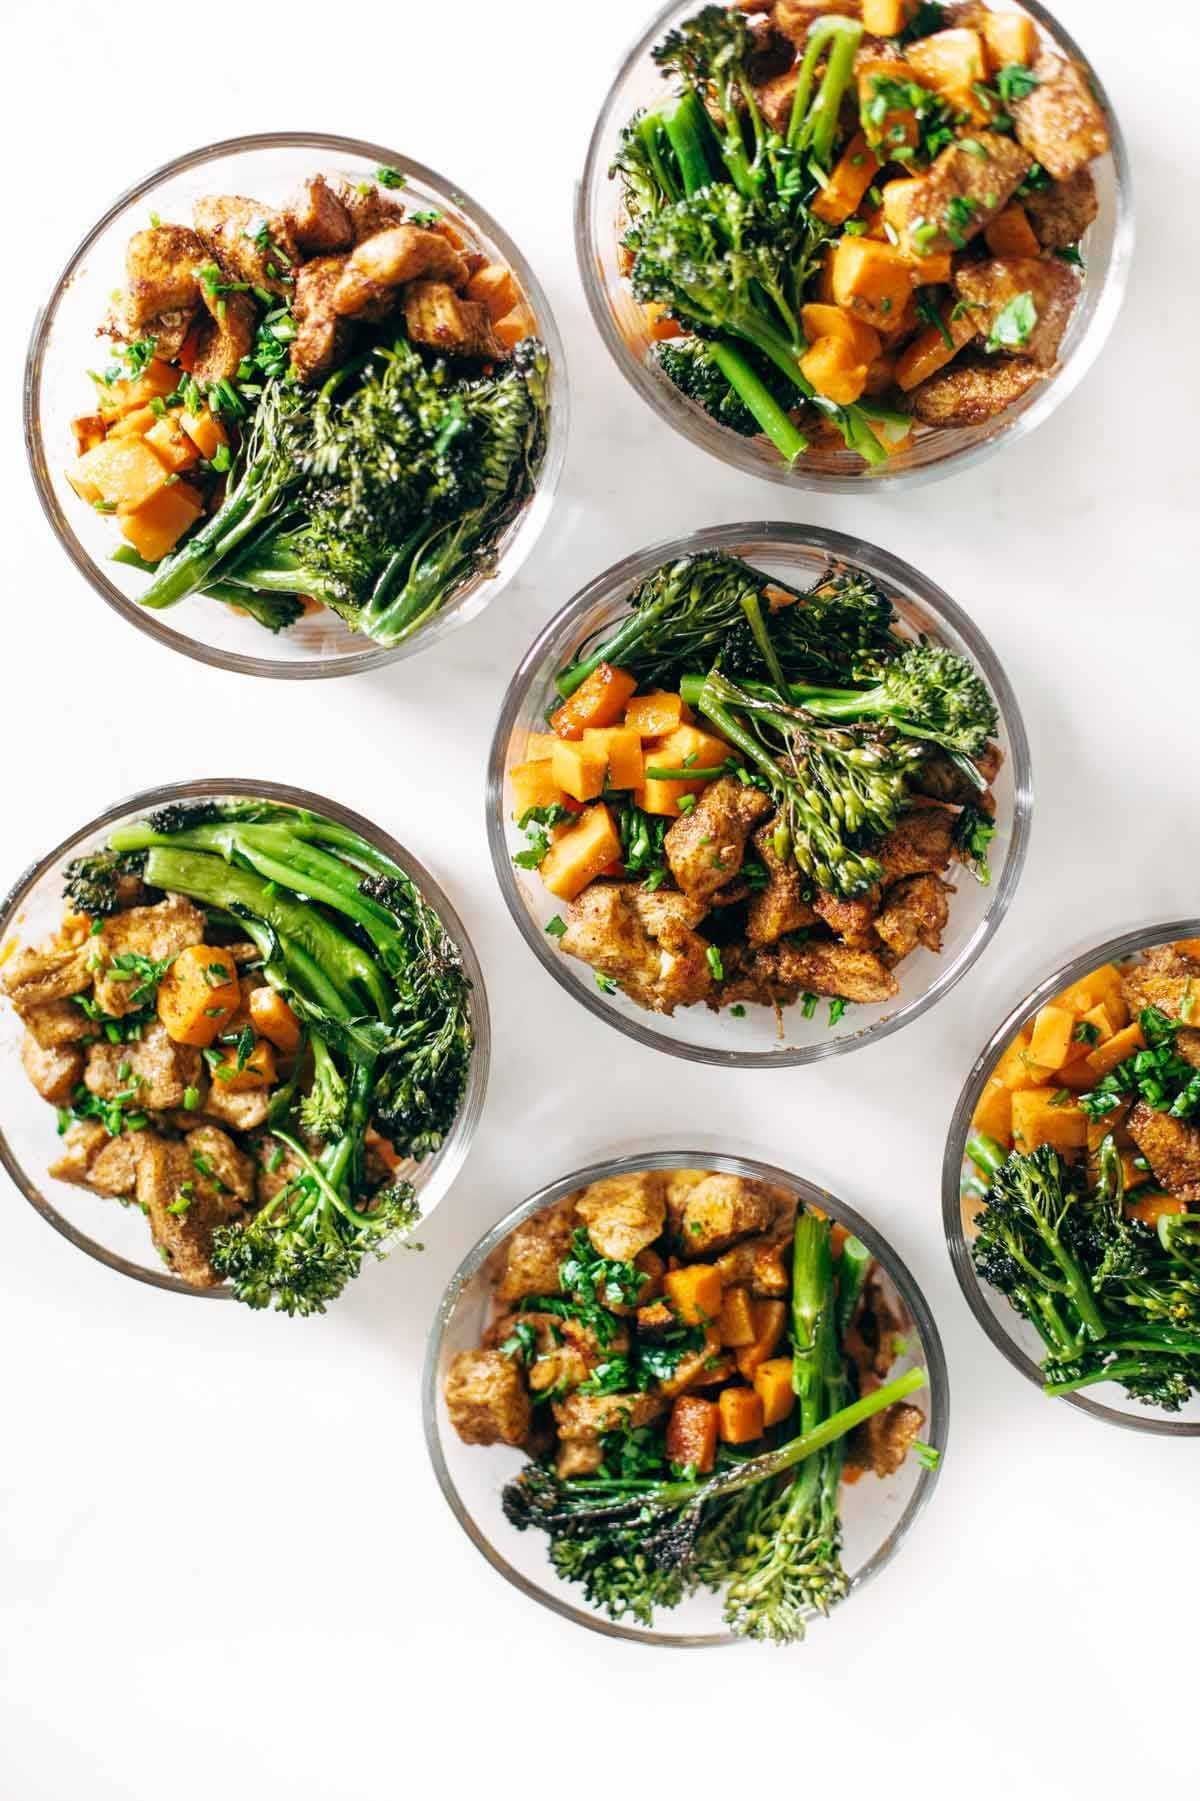 Bowls Of Chicken And Sweet Potatoes